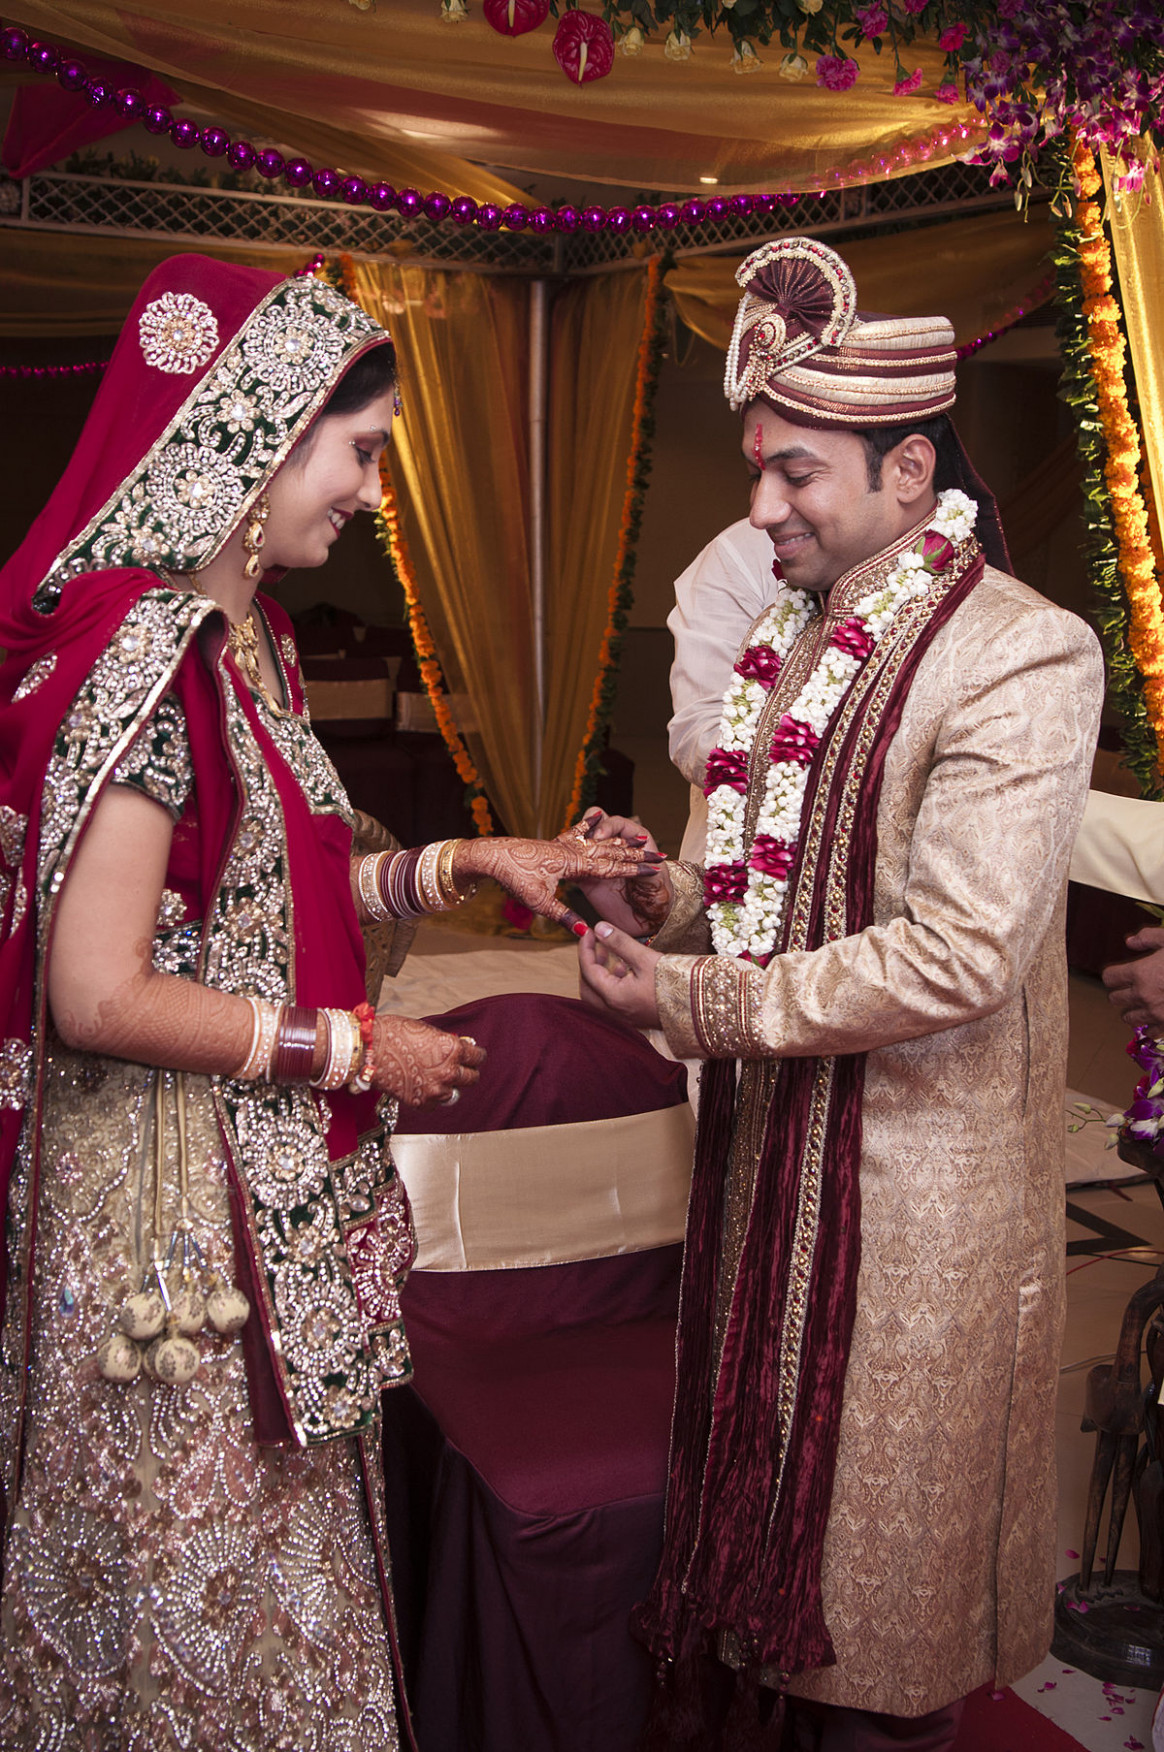 Indian wedding clothes - Wikipedia